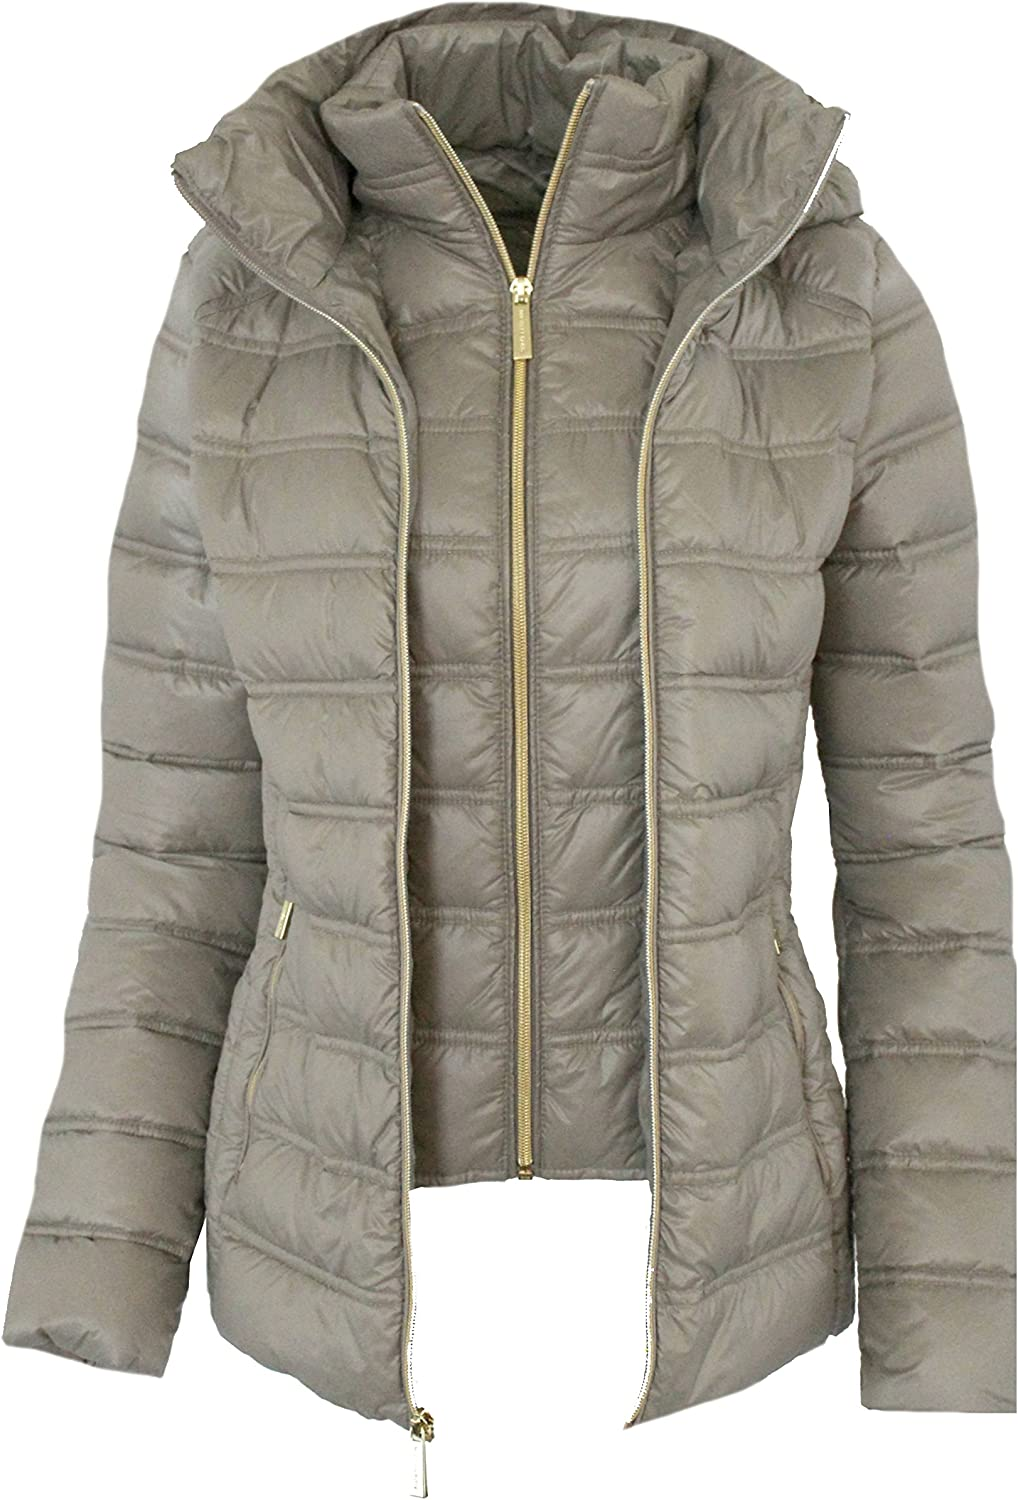 Wofupowga Boys and Girls Packable Padded Autumn Winter Puffer Vest Quilted Down Vest